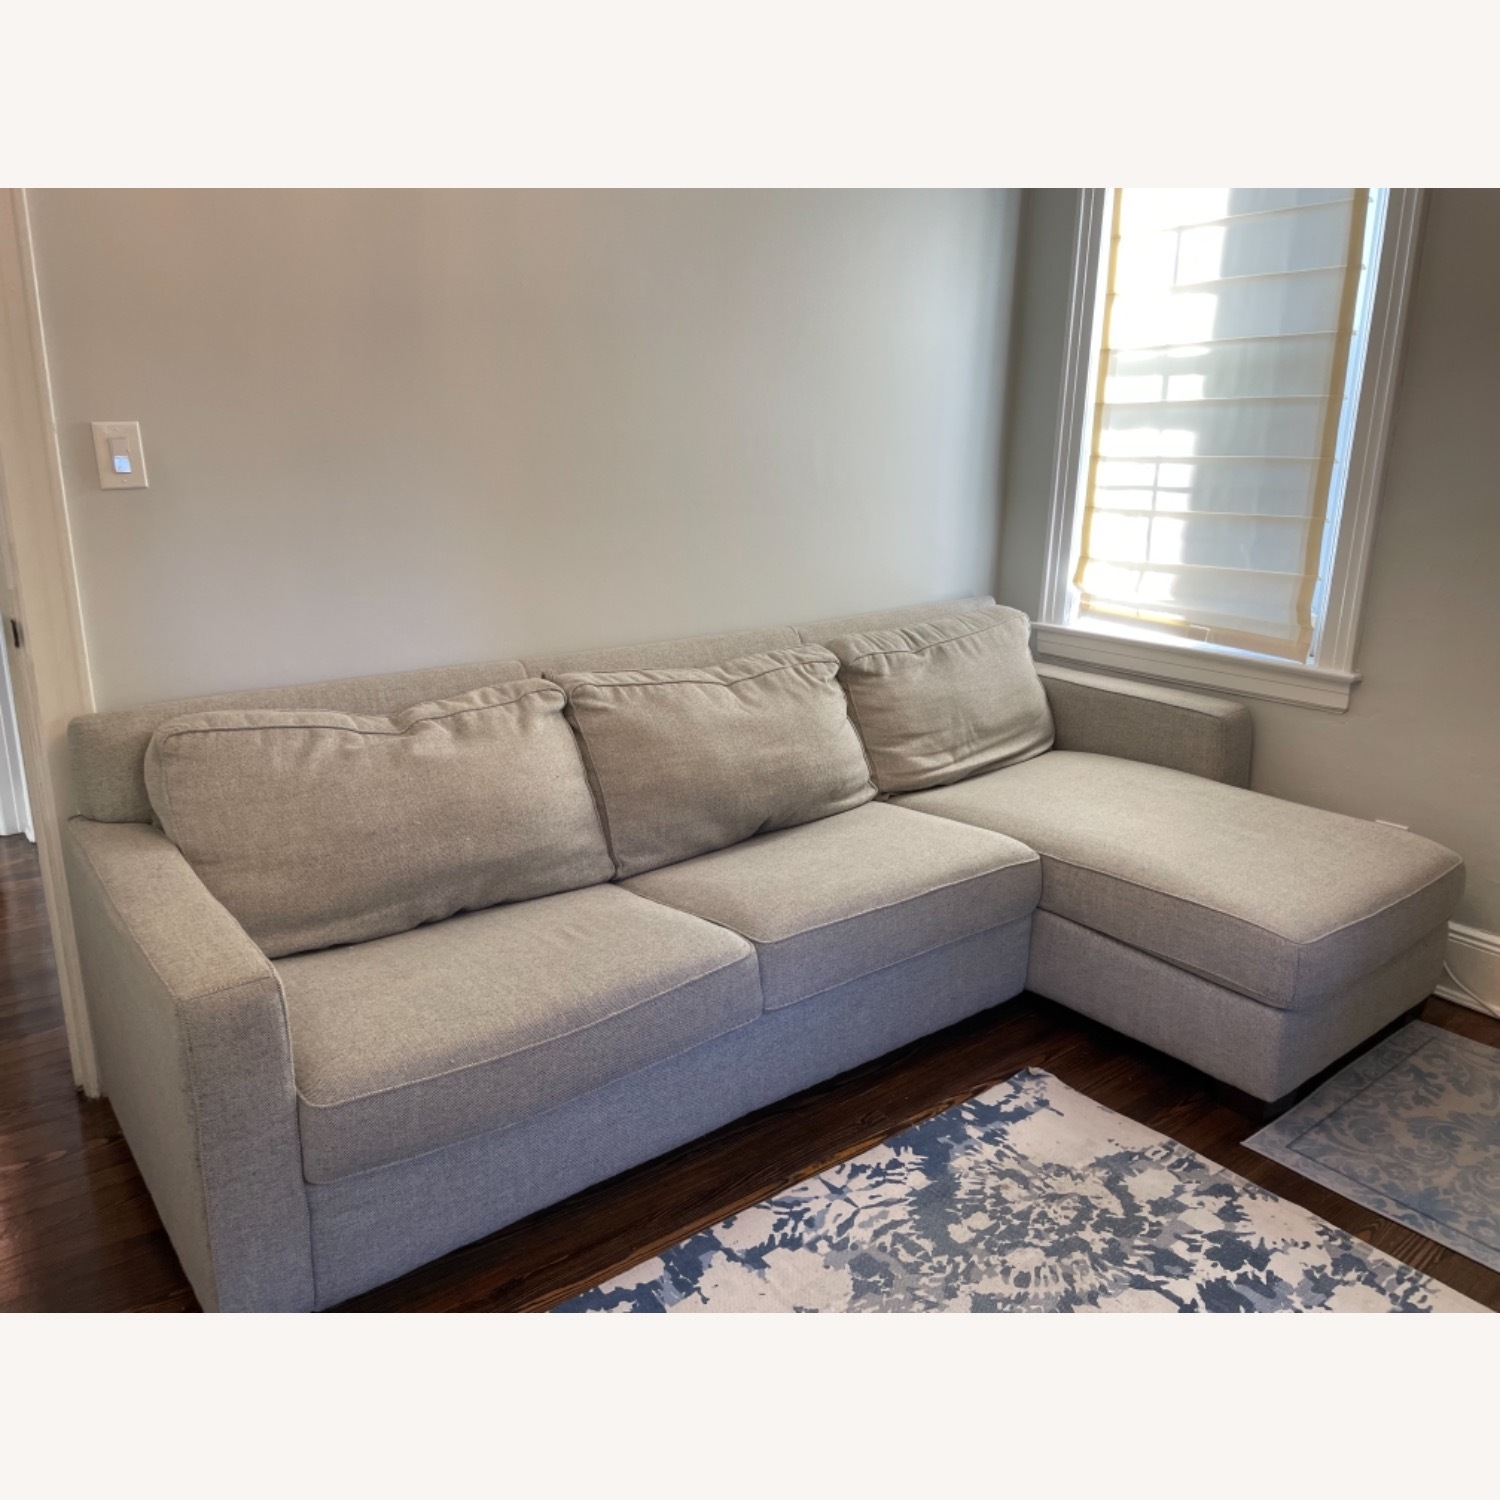 West Elm Henry Sleeper Sofa with Storage Chaise - image-7